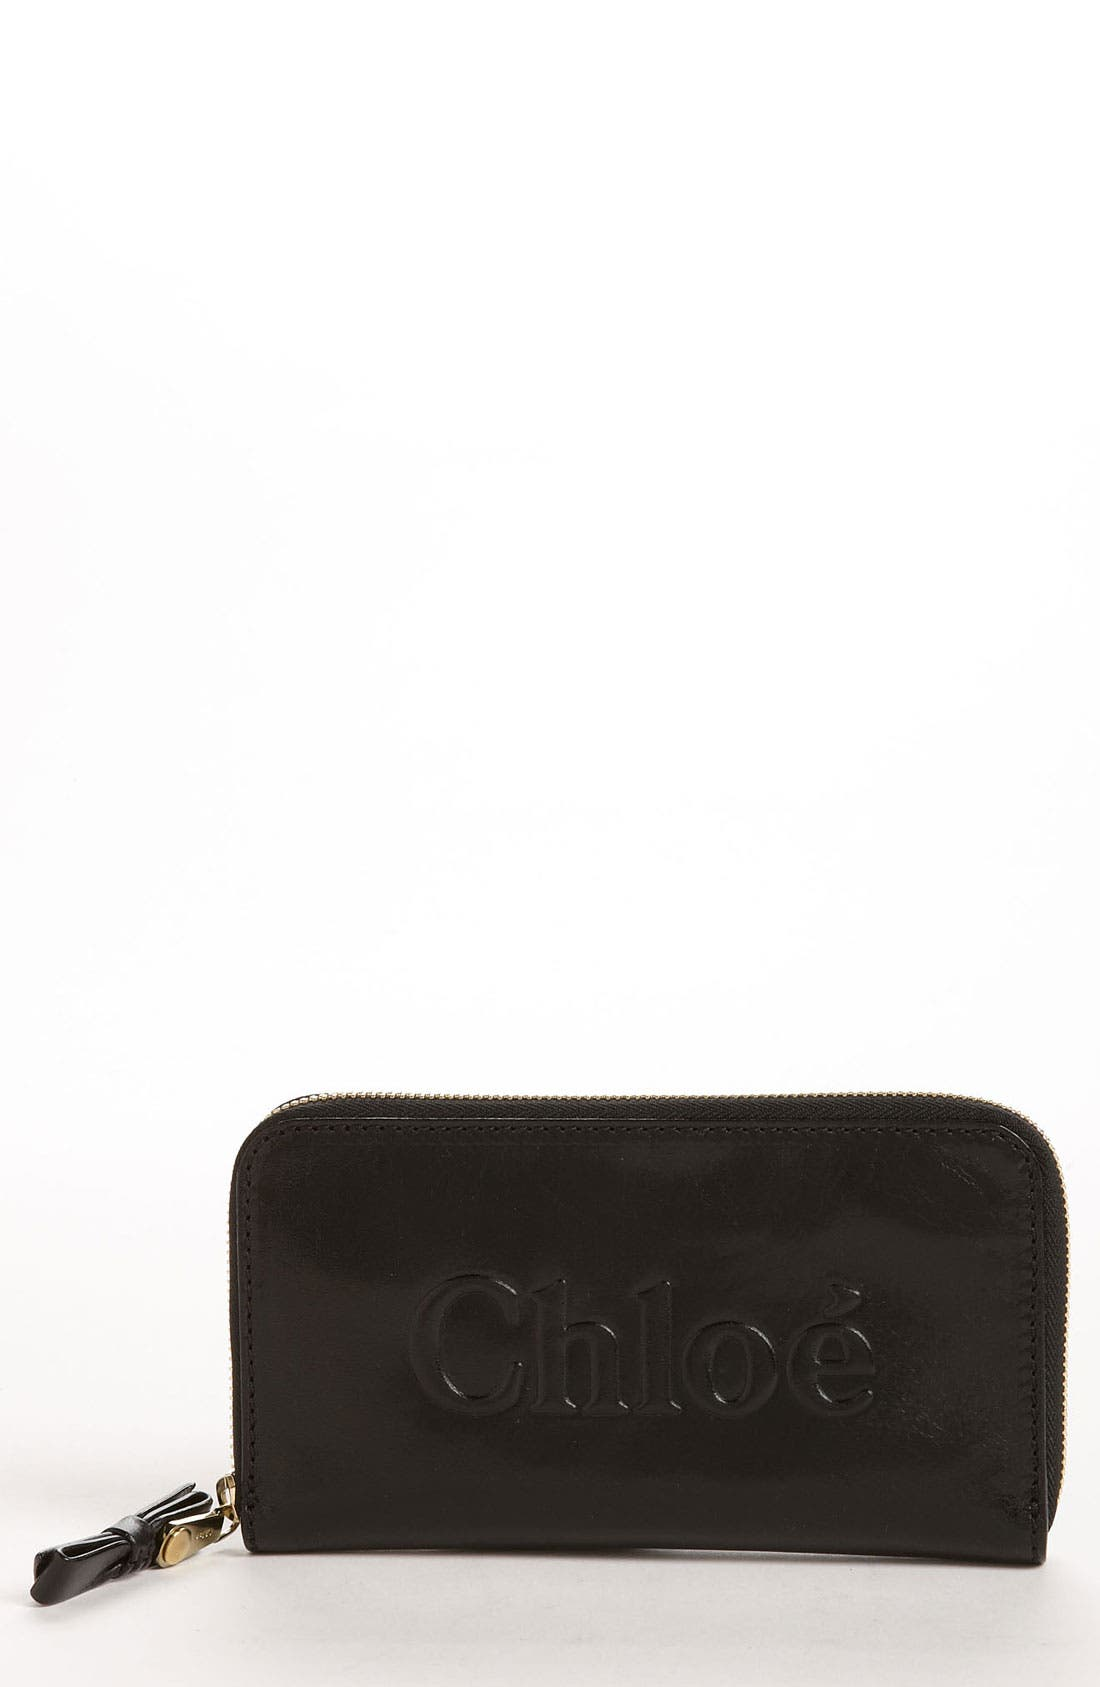 Alternate Image 1 Selected - Chloé 'Shadow - Long' Zip Around Leather Wallet